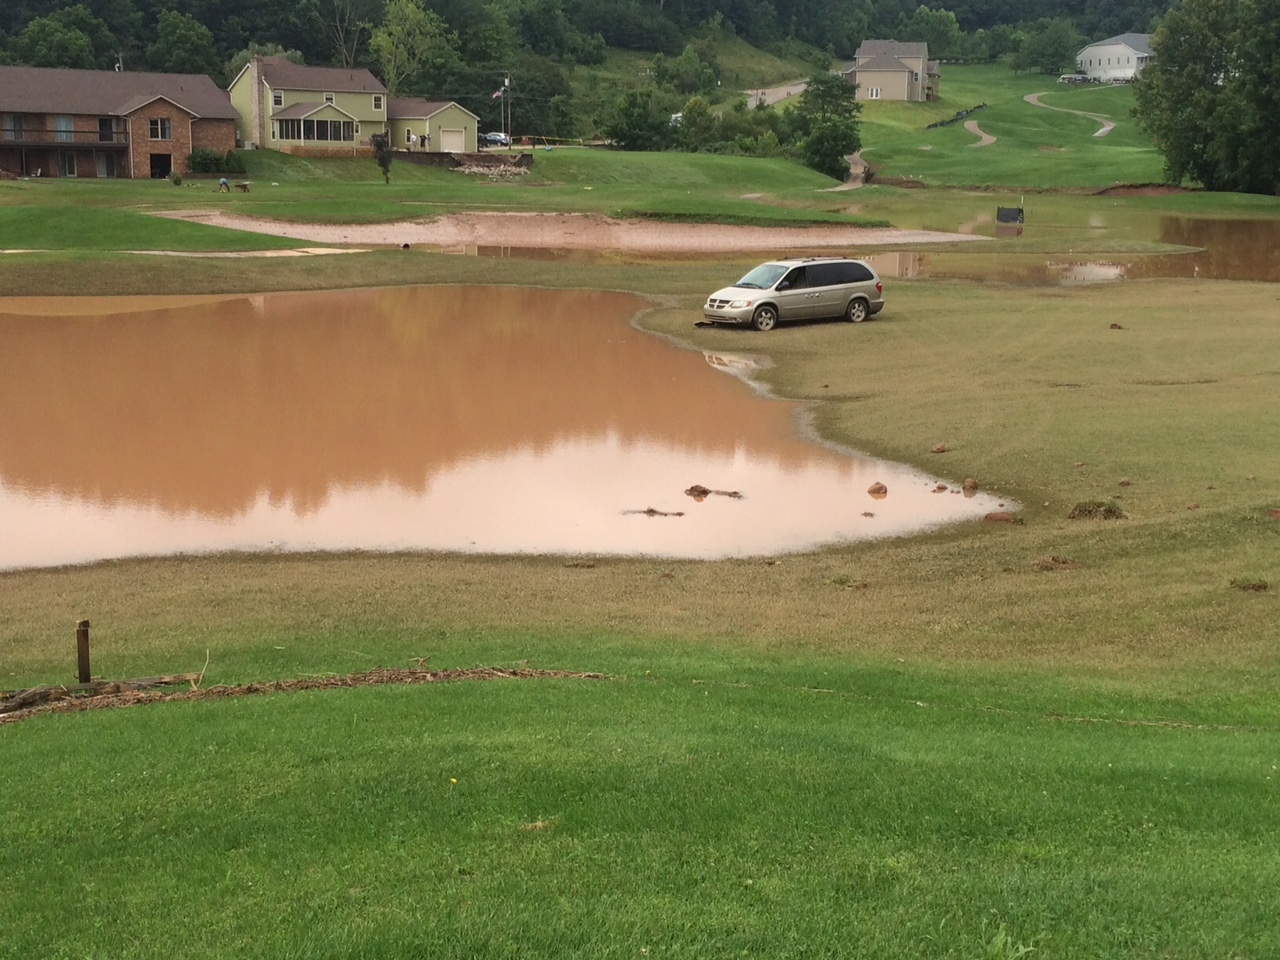 Flood cleanup work continues in Wood County days after storms